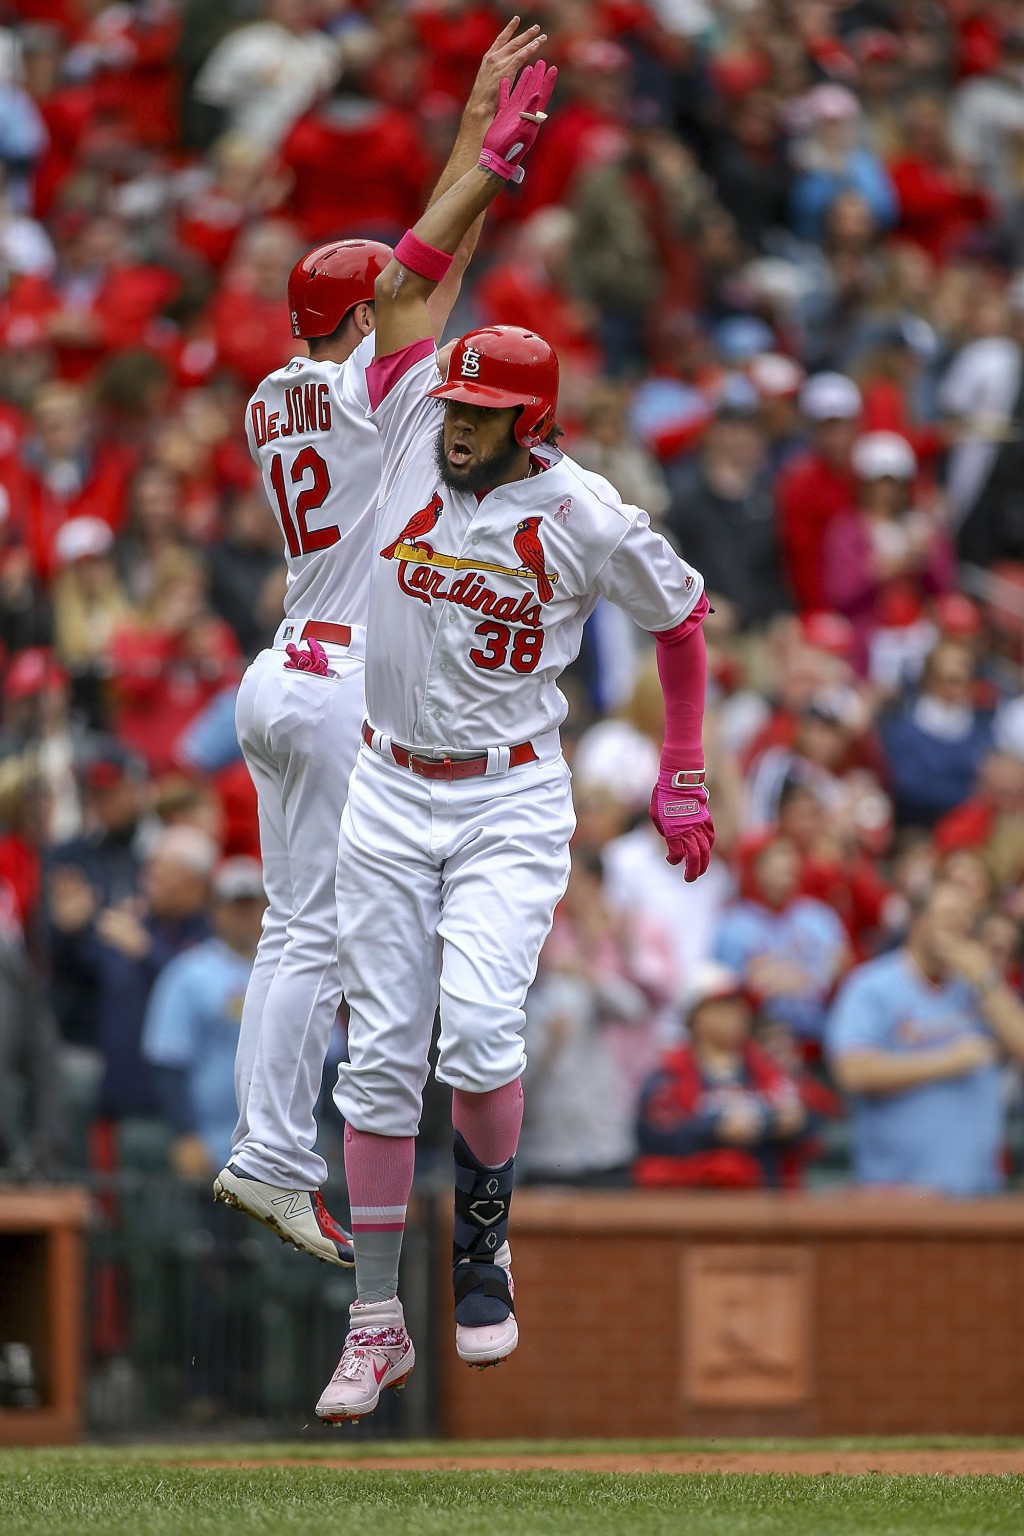 St. Louis Cardinals' Jose Martinez, right, celebrates with teammate Paul DeJong after hitting a two-run home run during the second inning of a basebal